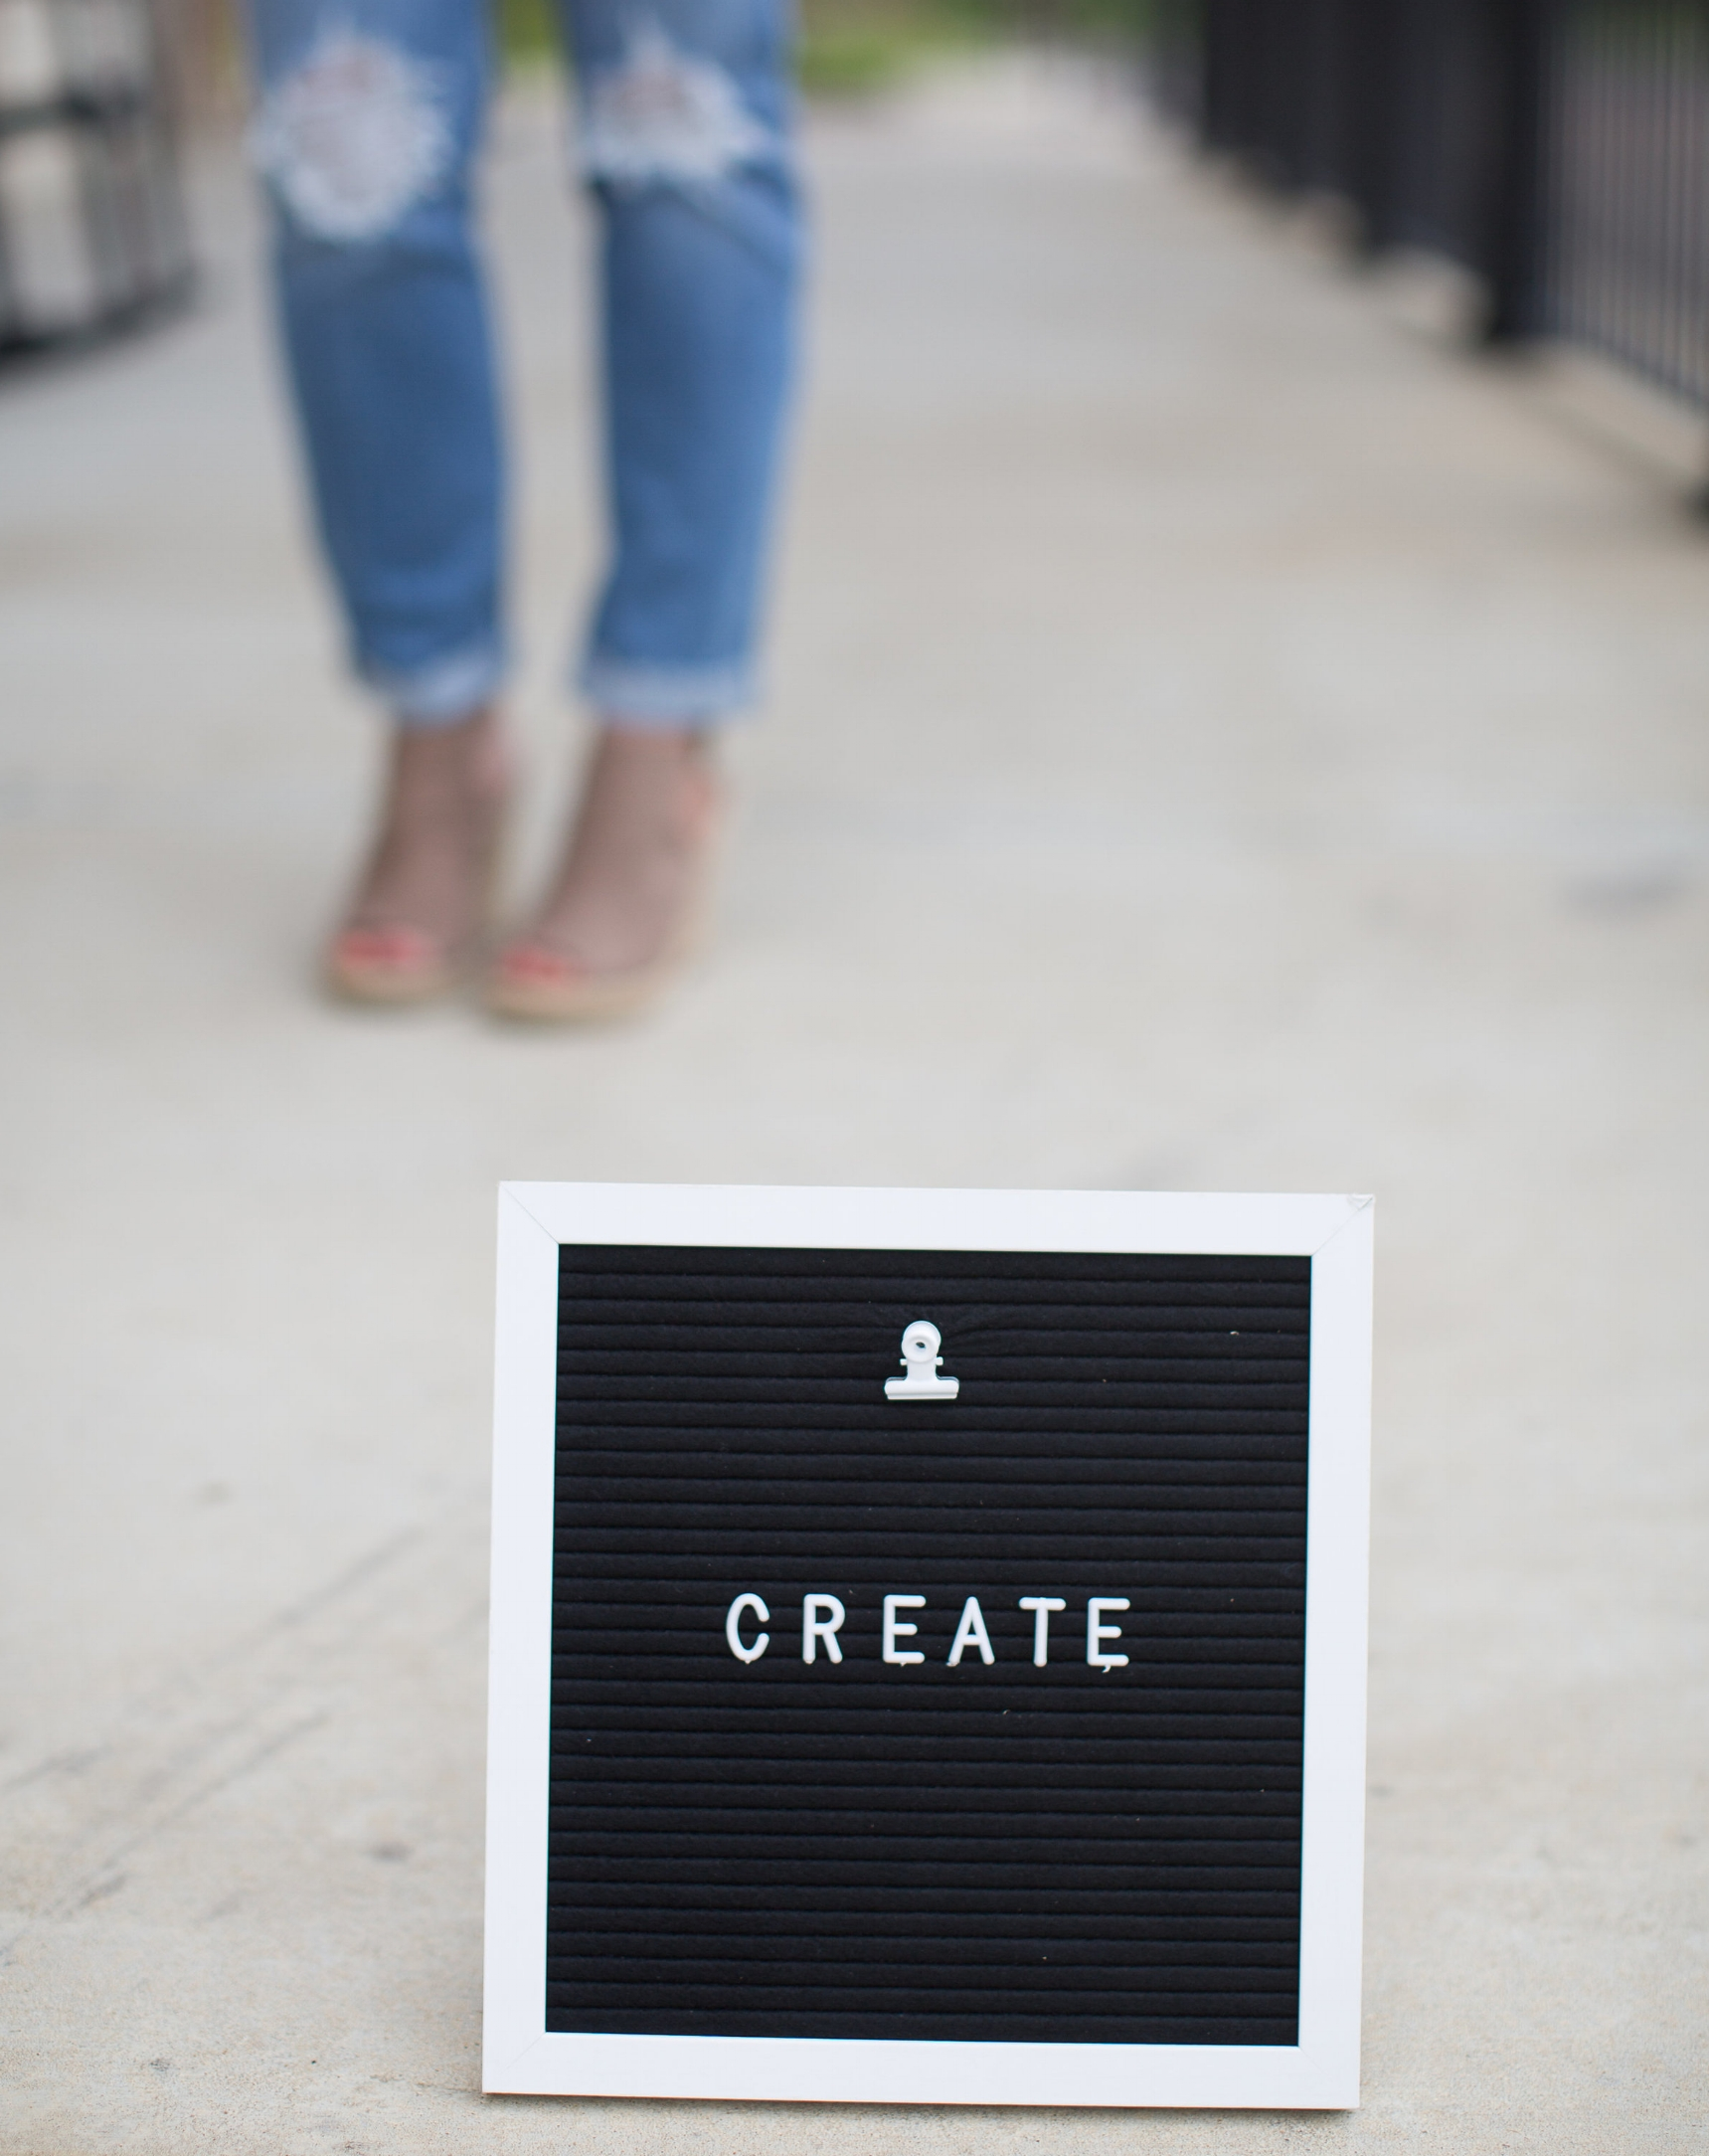 CONSULTING — The Small Town Creative